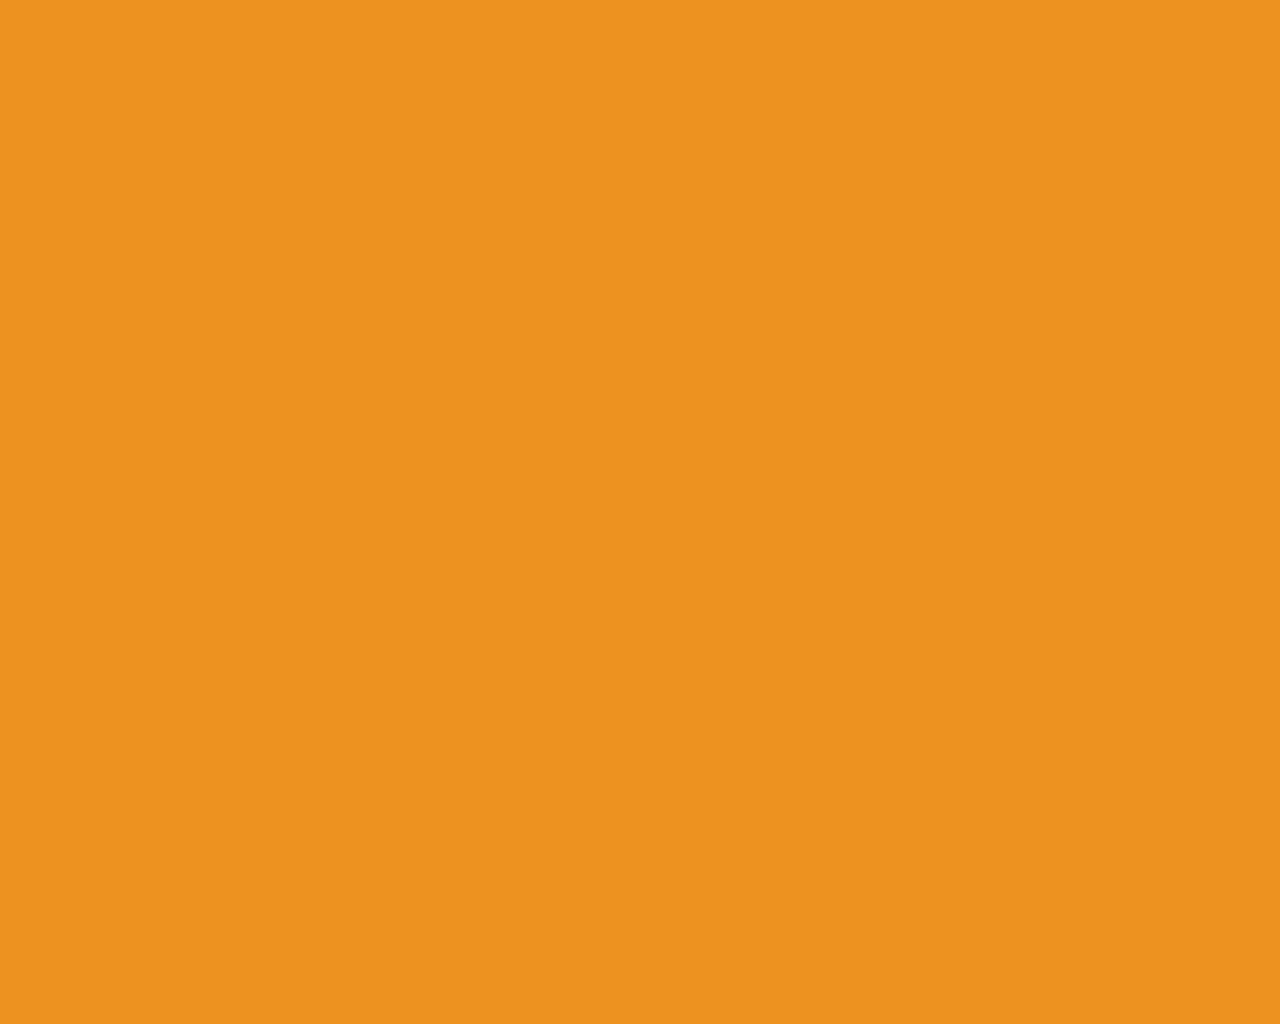 1280x1024 Carrot Orange Solid Color Background